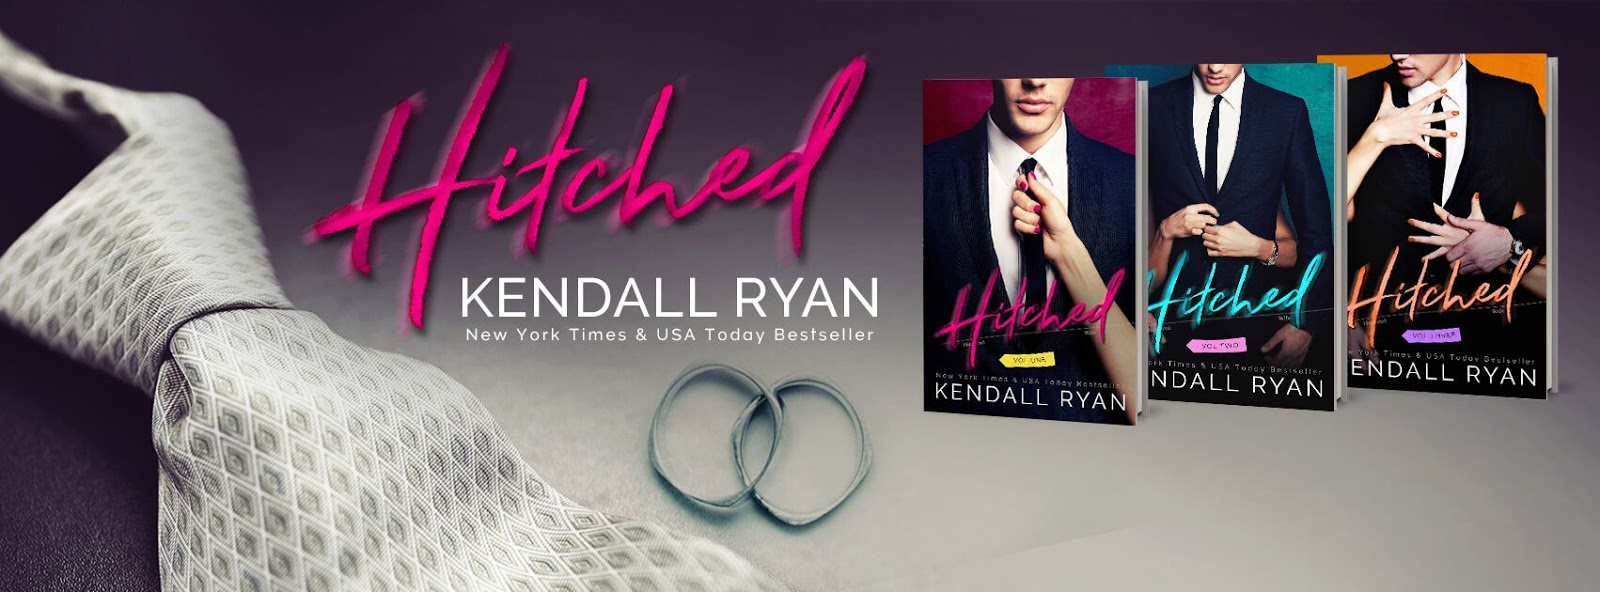 Kendall Ryan Libros T G Book Boutique Blog Tour Hitched Vol 3 By Kendall Ryan